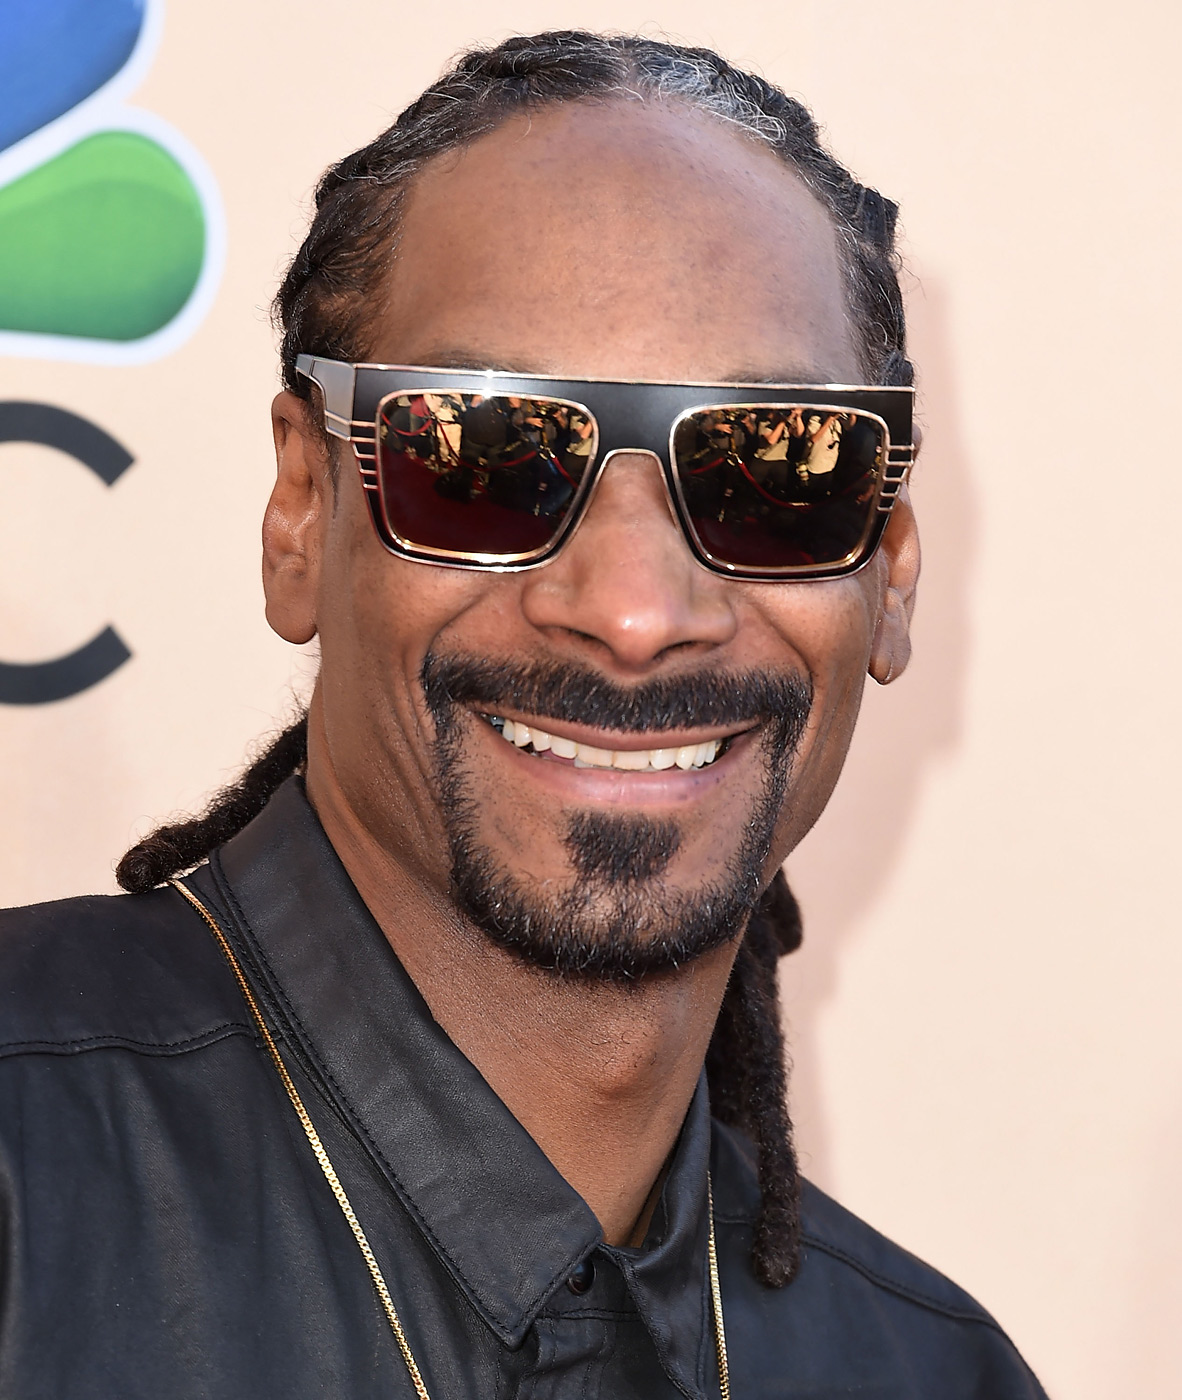 Snoop Dogg arrives at the 2015 iHeartRadio Music Awards at The Shrine Auditorium on March 29, 2015 in Los Angeles, Calif.